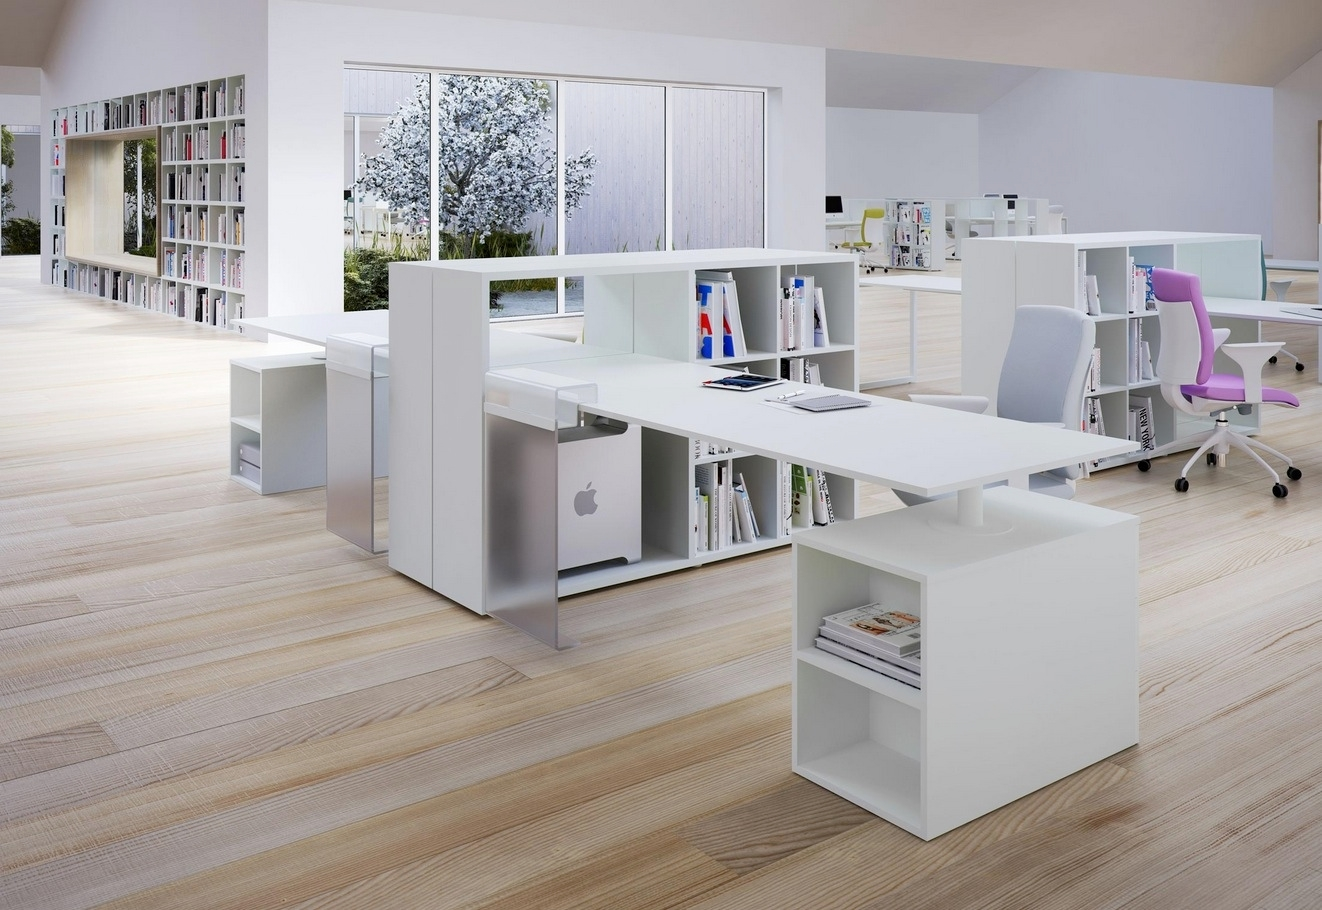 20 contemporary office desk designs decorating ideas for Modern office design ideas